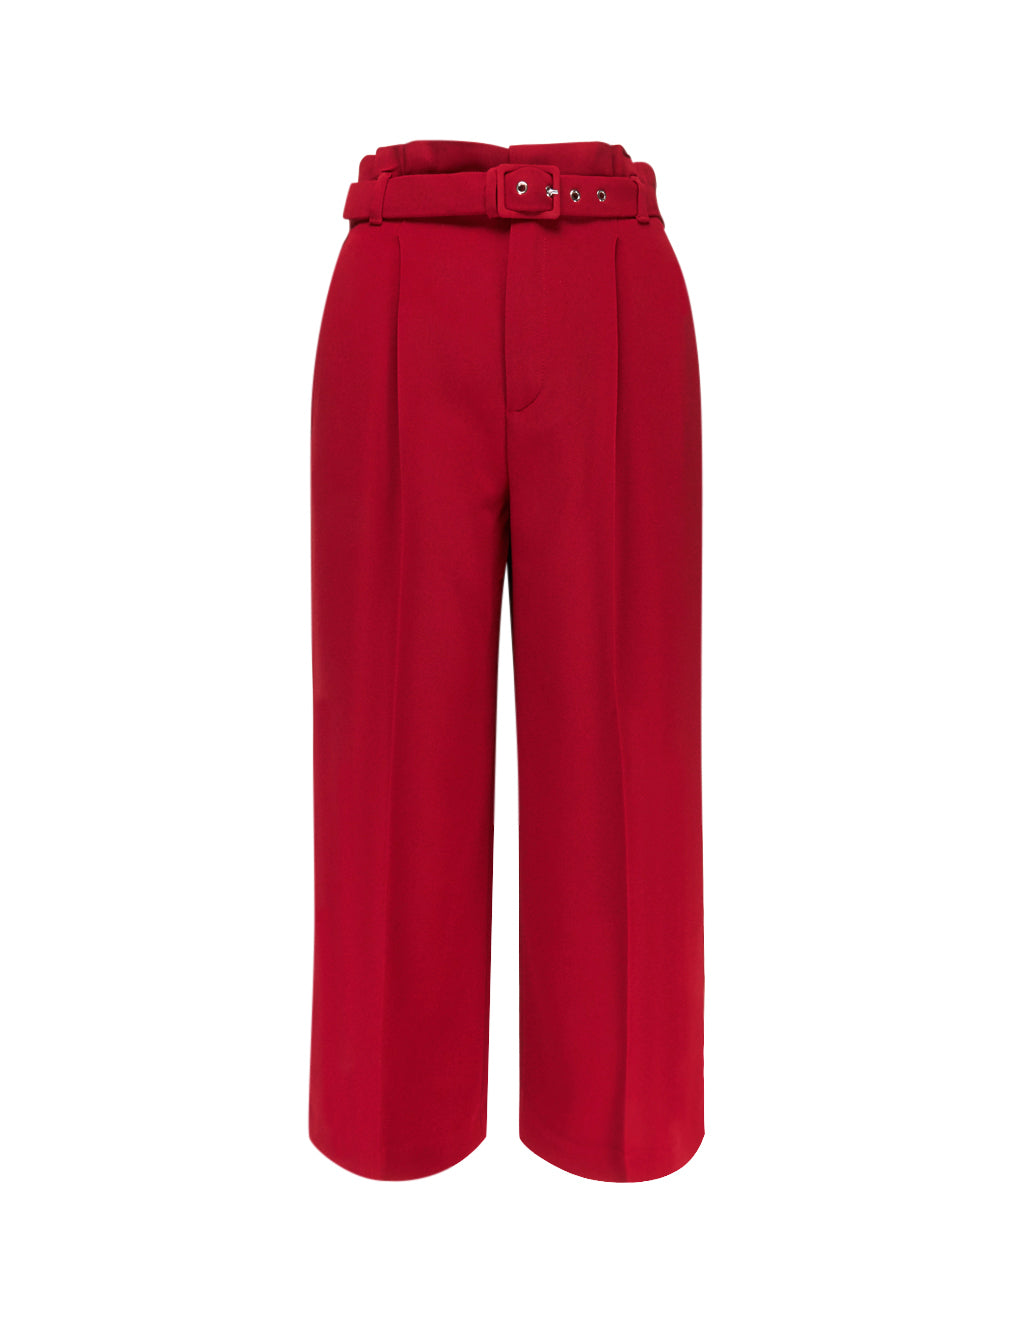 REDValentino Women's Giulio Fashion Red High Waist Culottes SR0RBB602EUL58